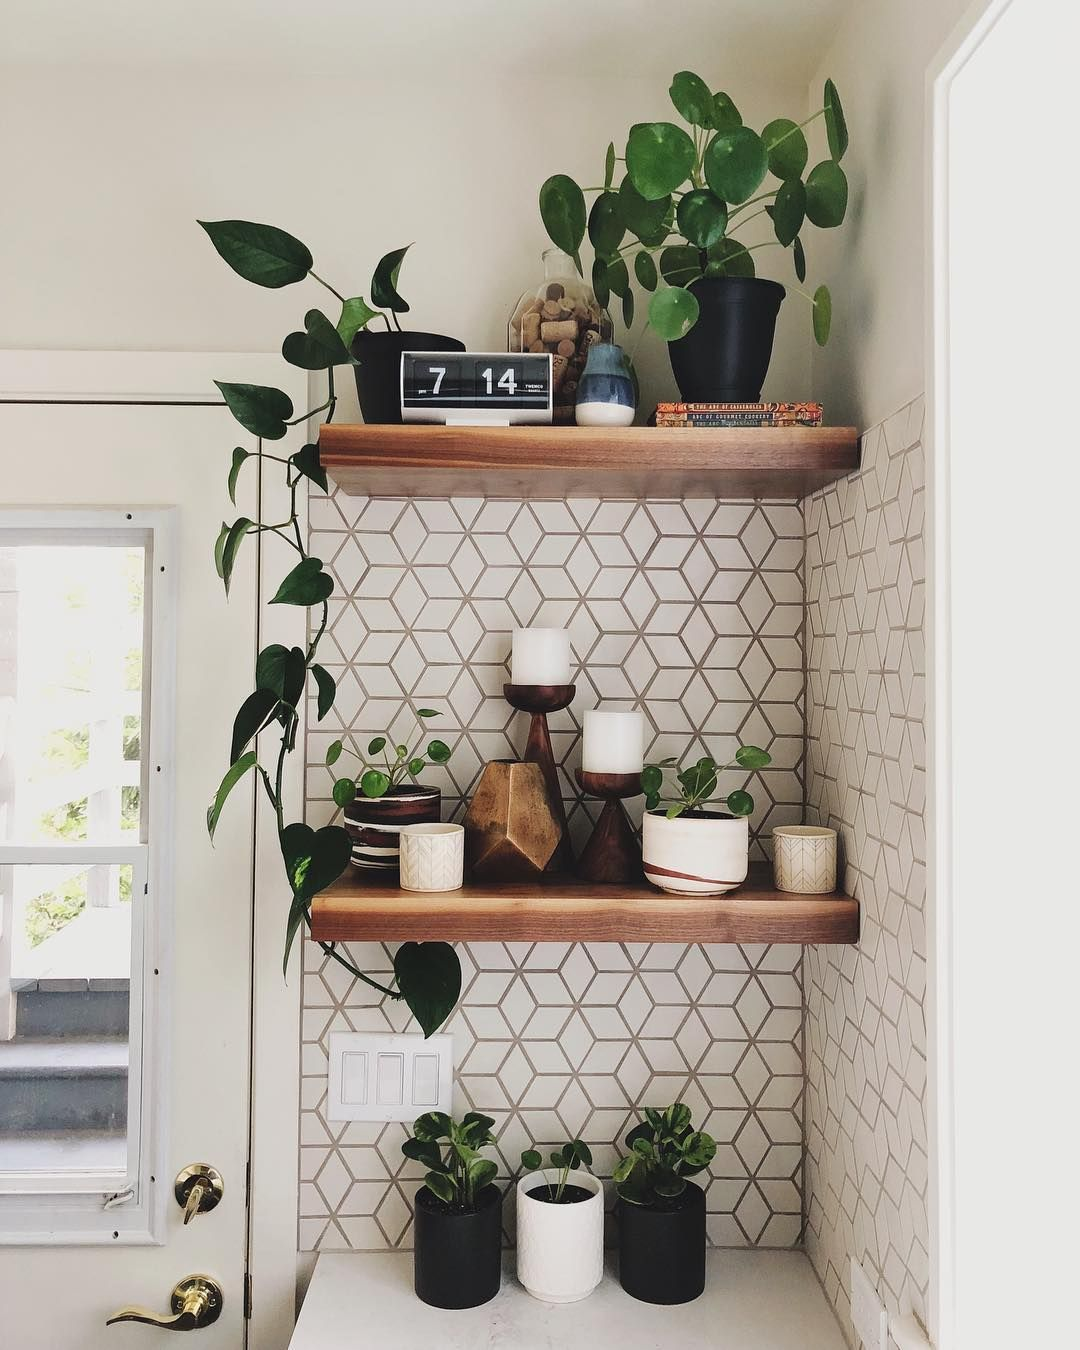 "Edward (Eddy) on Instagram: ""Open shelving is just an excuse to have more plants, right?! Pilea army is slowly growing 🙌🏼🌱 . . . #missionedward #shelfie #urbanjungle…"""